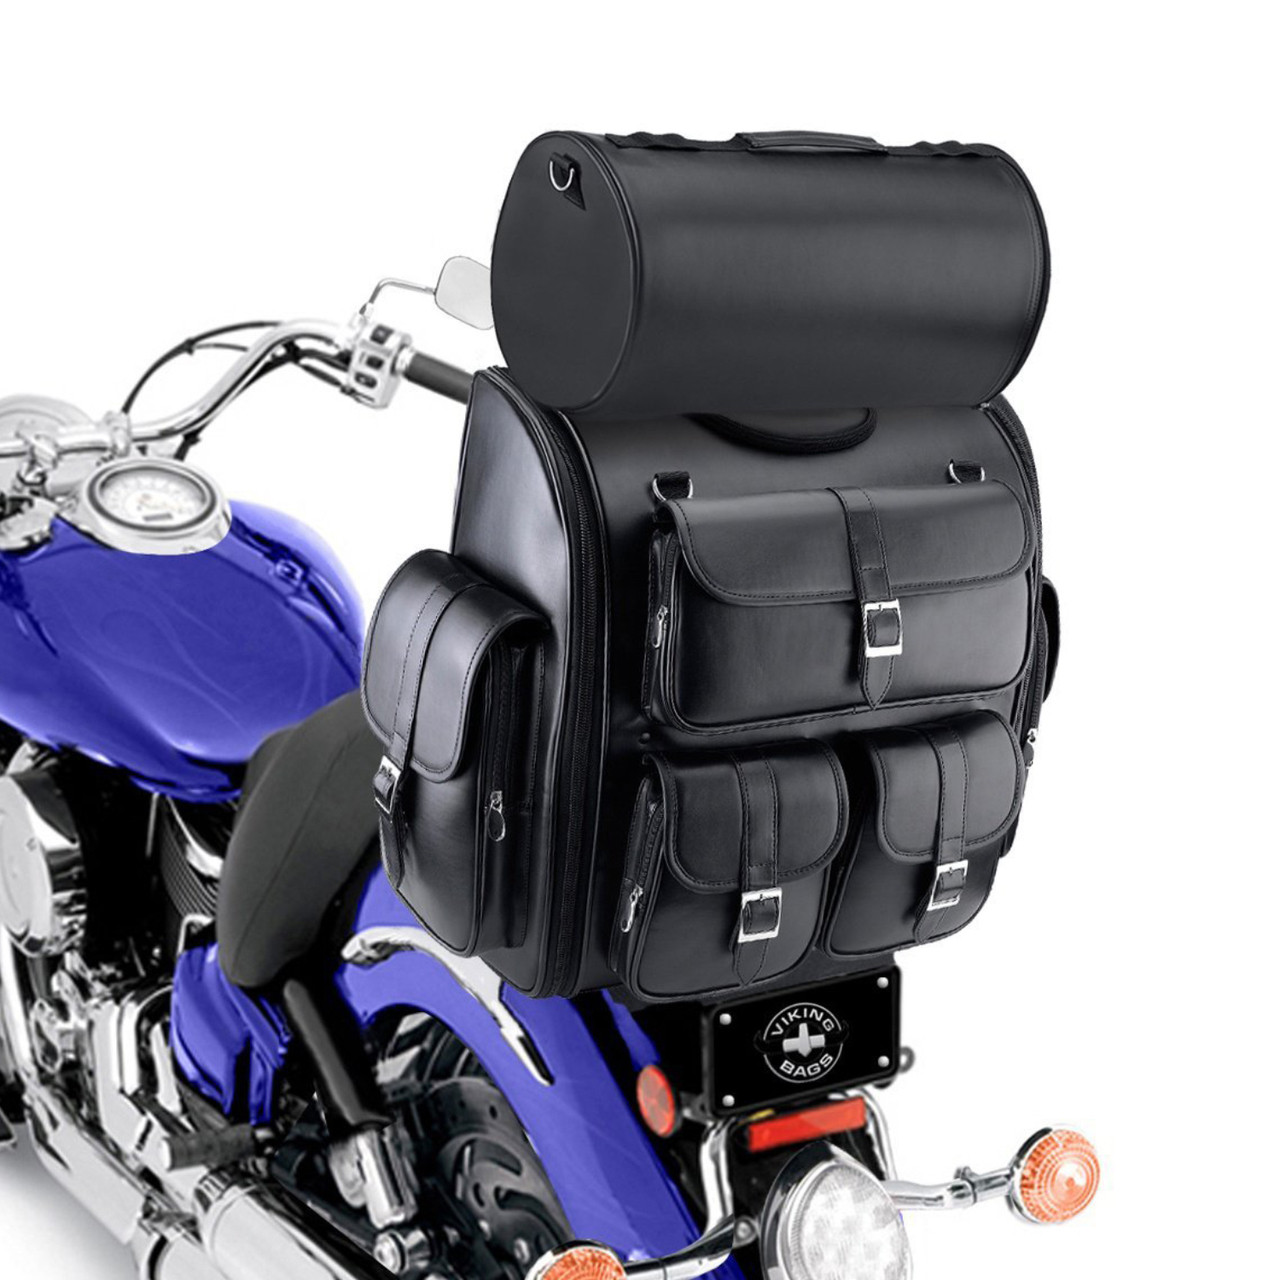 Viking Classic Motorcycle Sissy Bar Bag 3,100 cubic inches  Back on Bike View with Roller